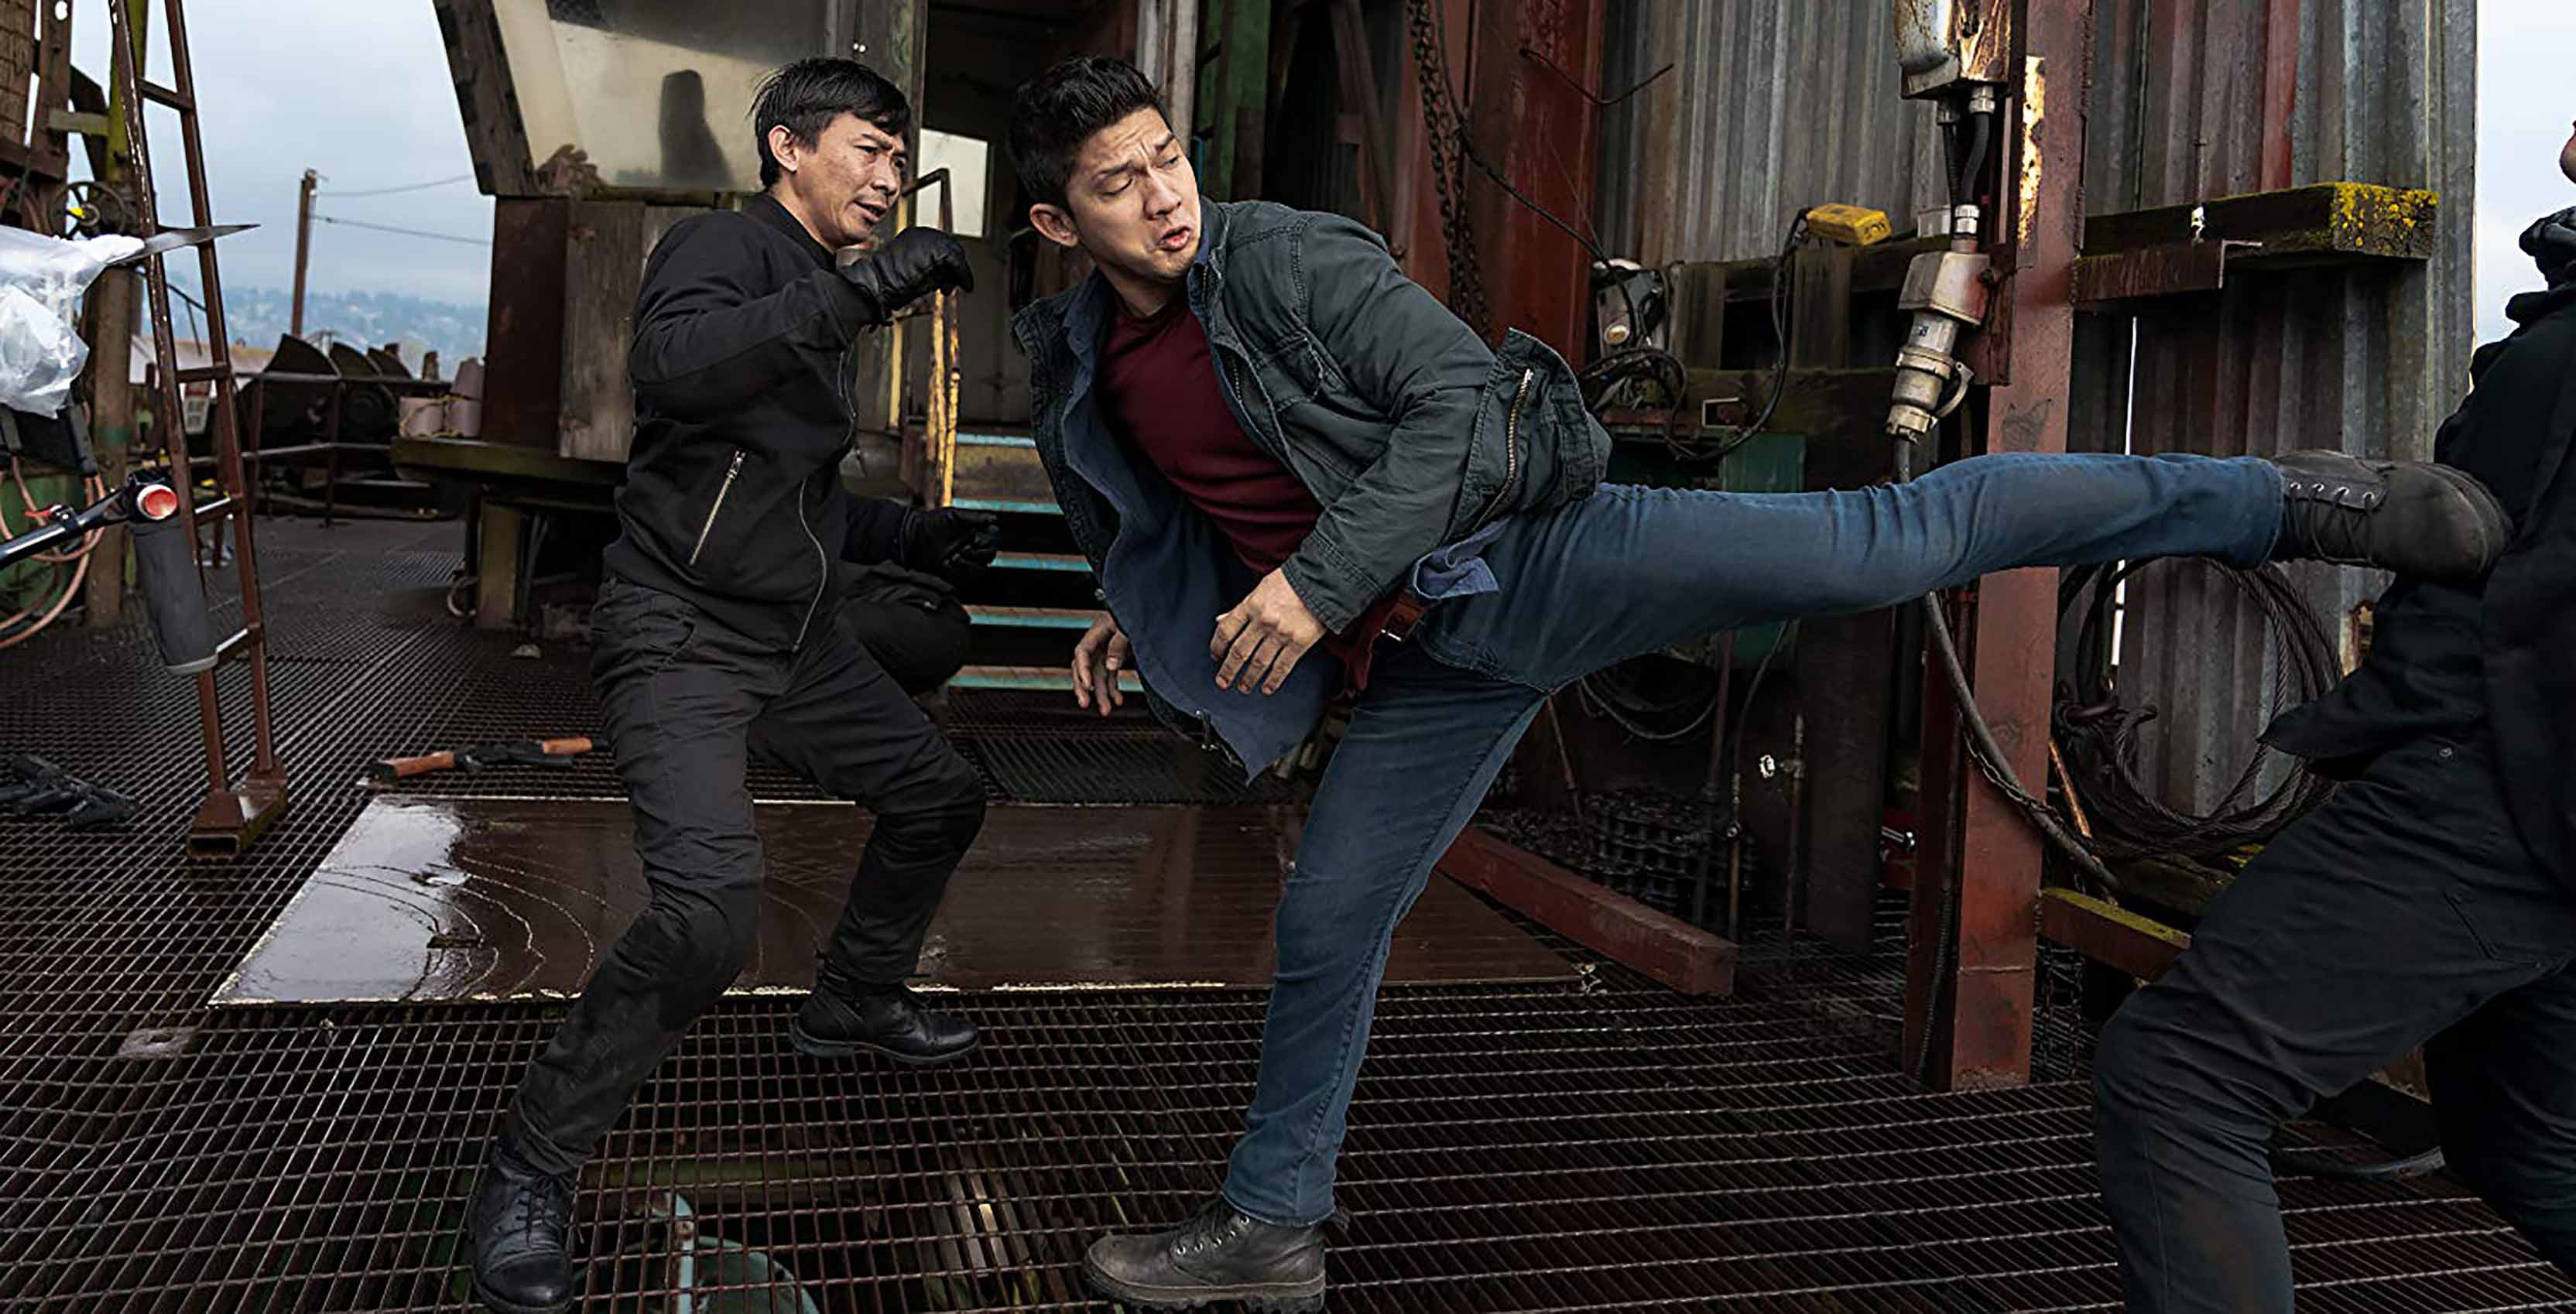 wu assassins release date